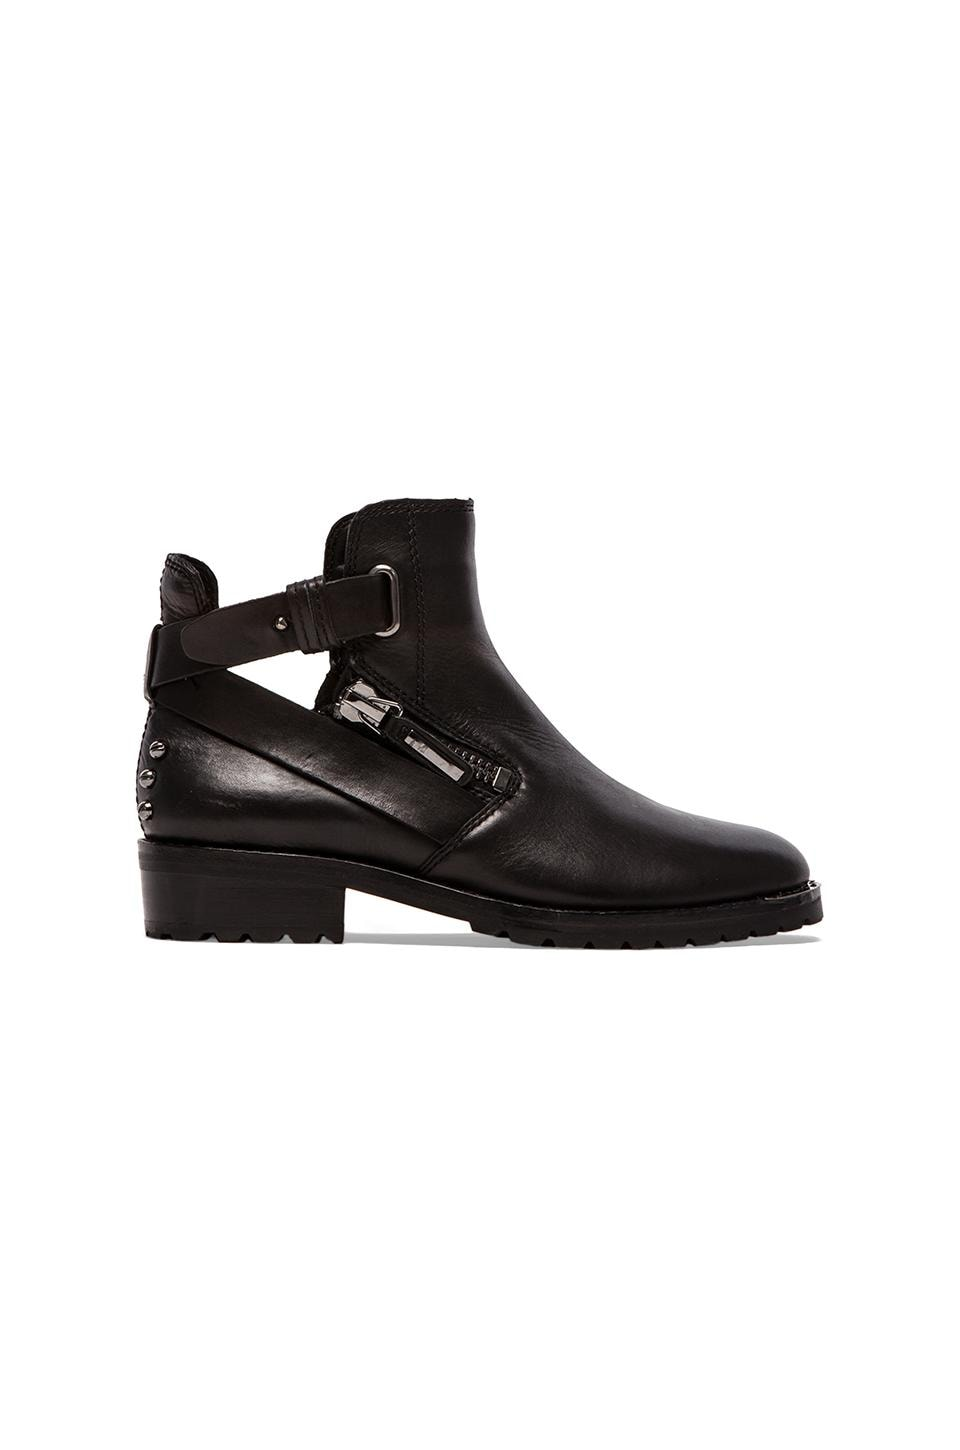 Dolce Vita Kinley Boot in Black